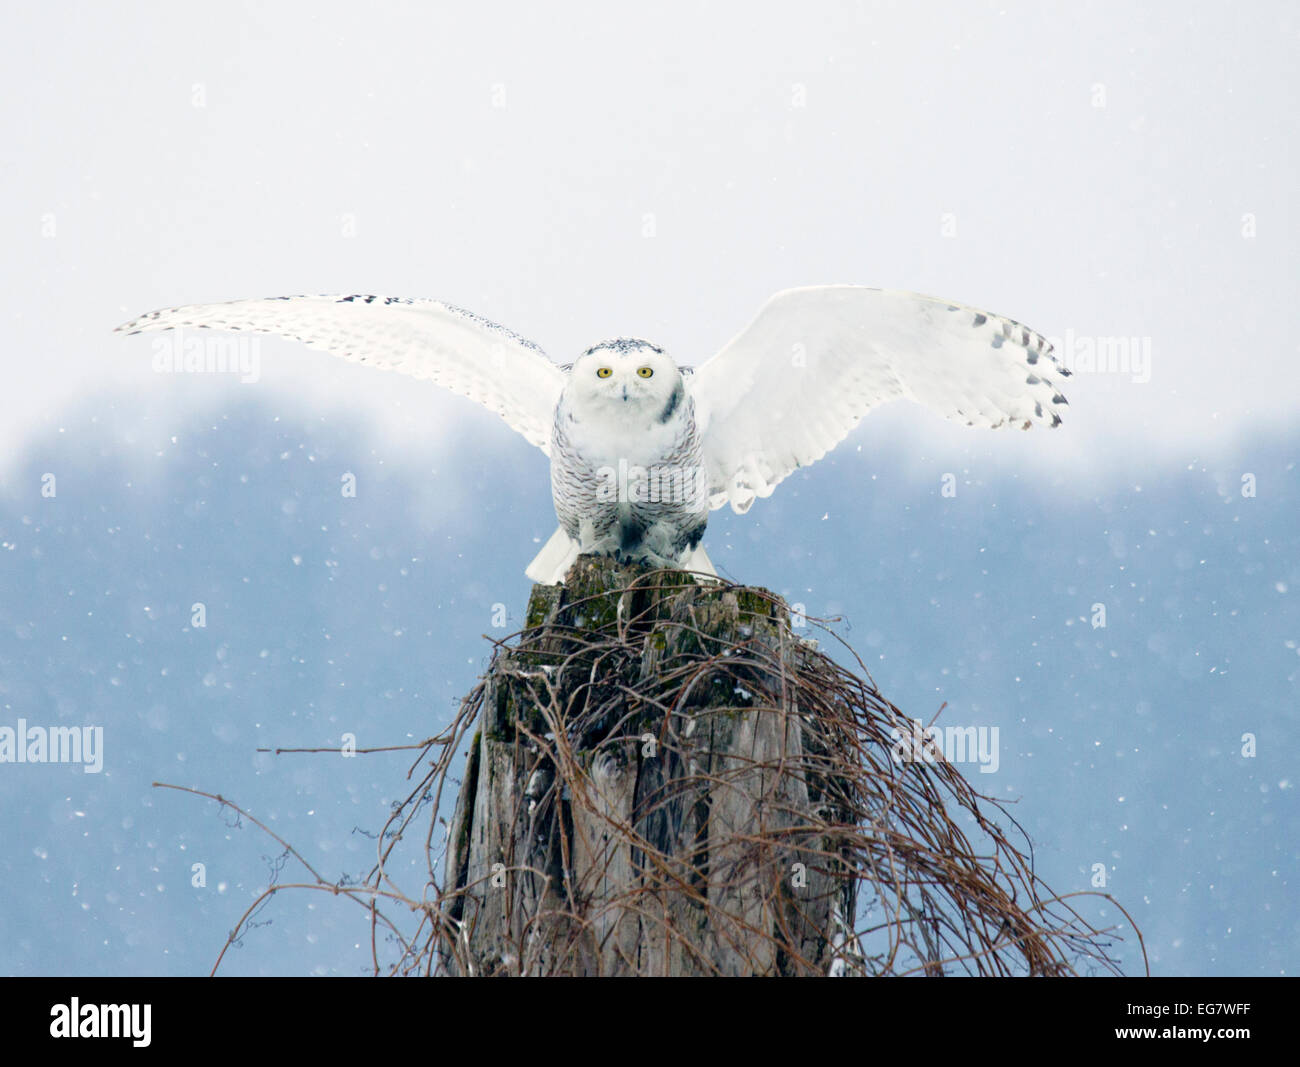 Snowy Owl Perched Wings Extended - Stock Image